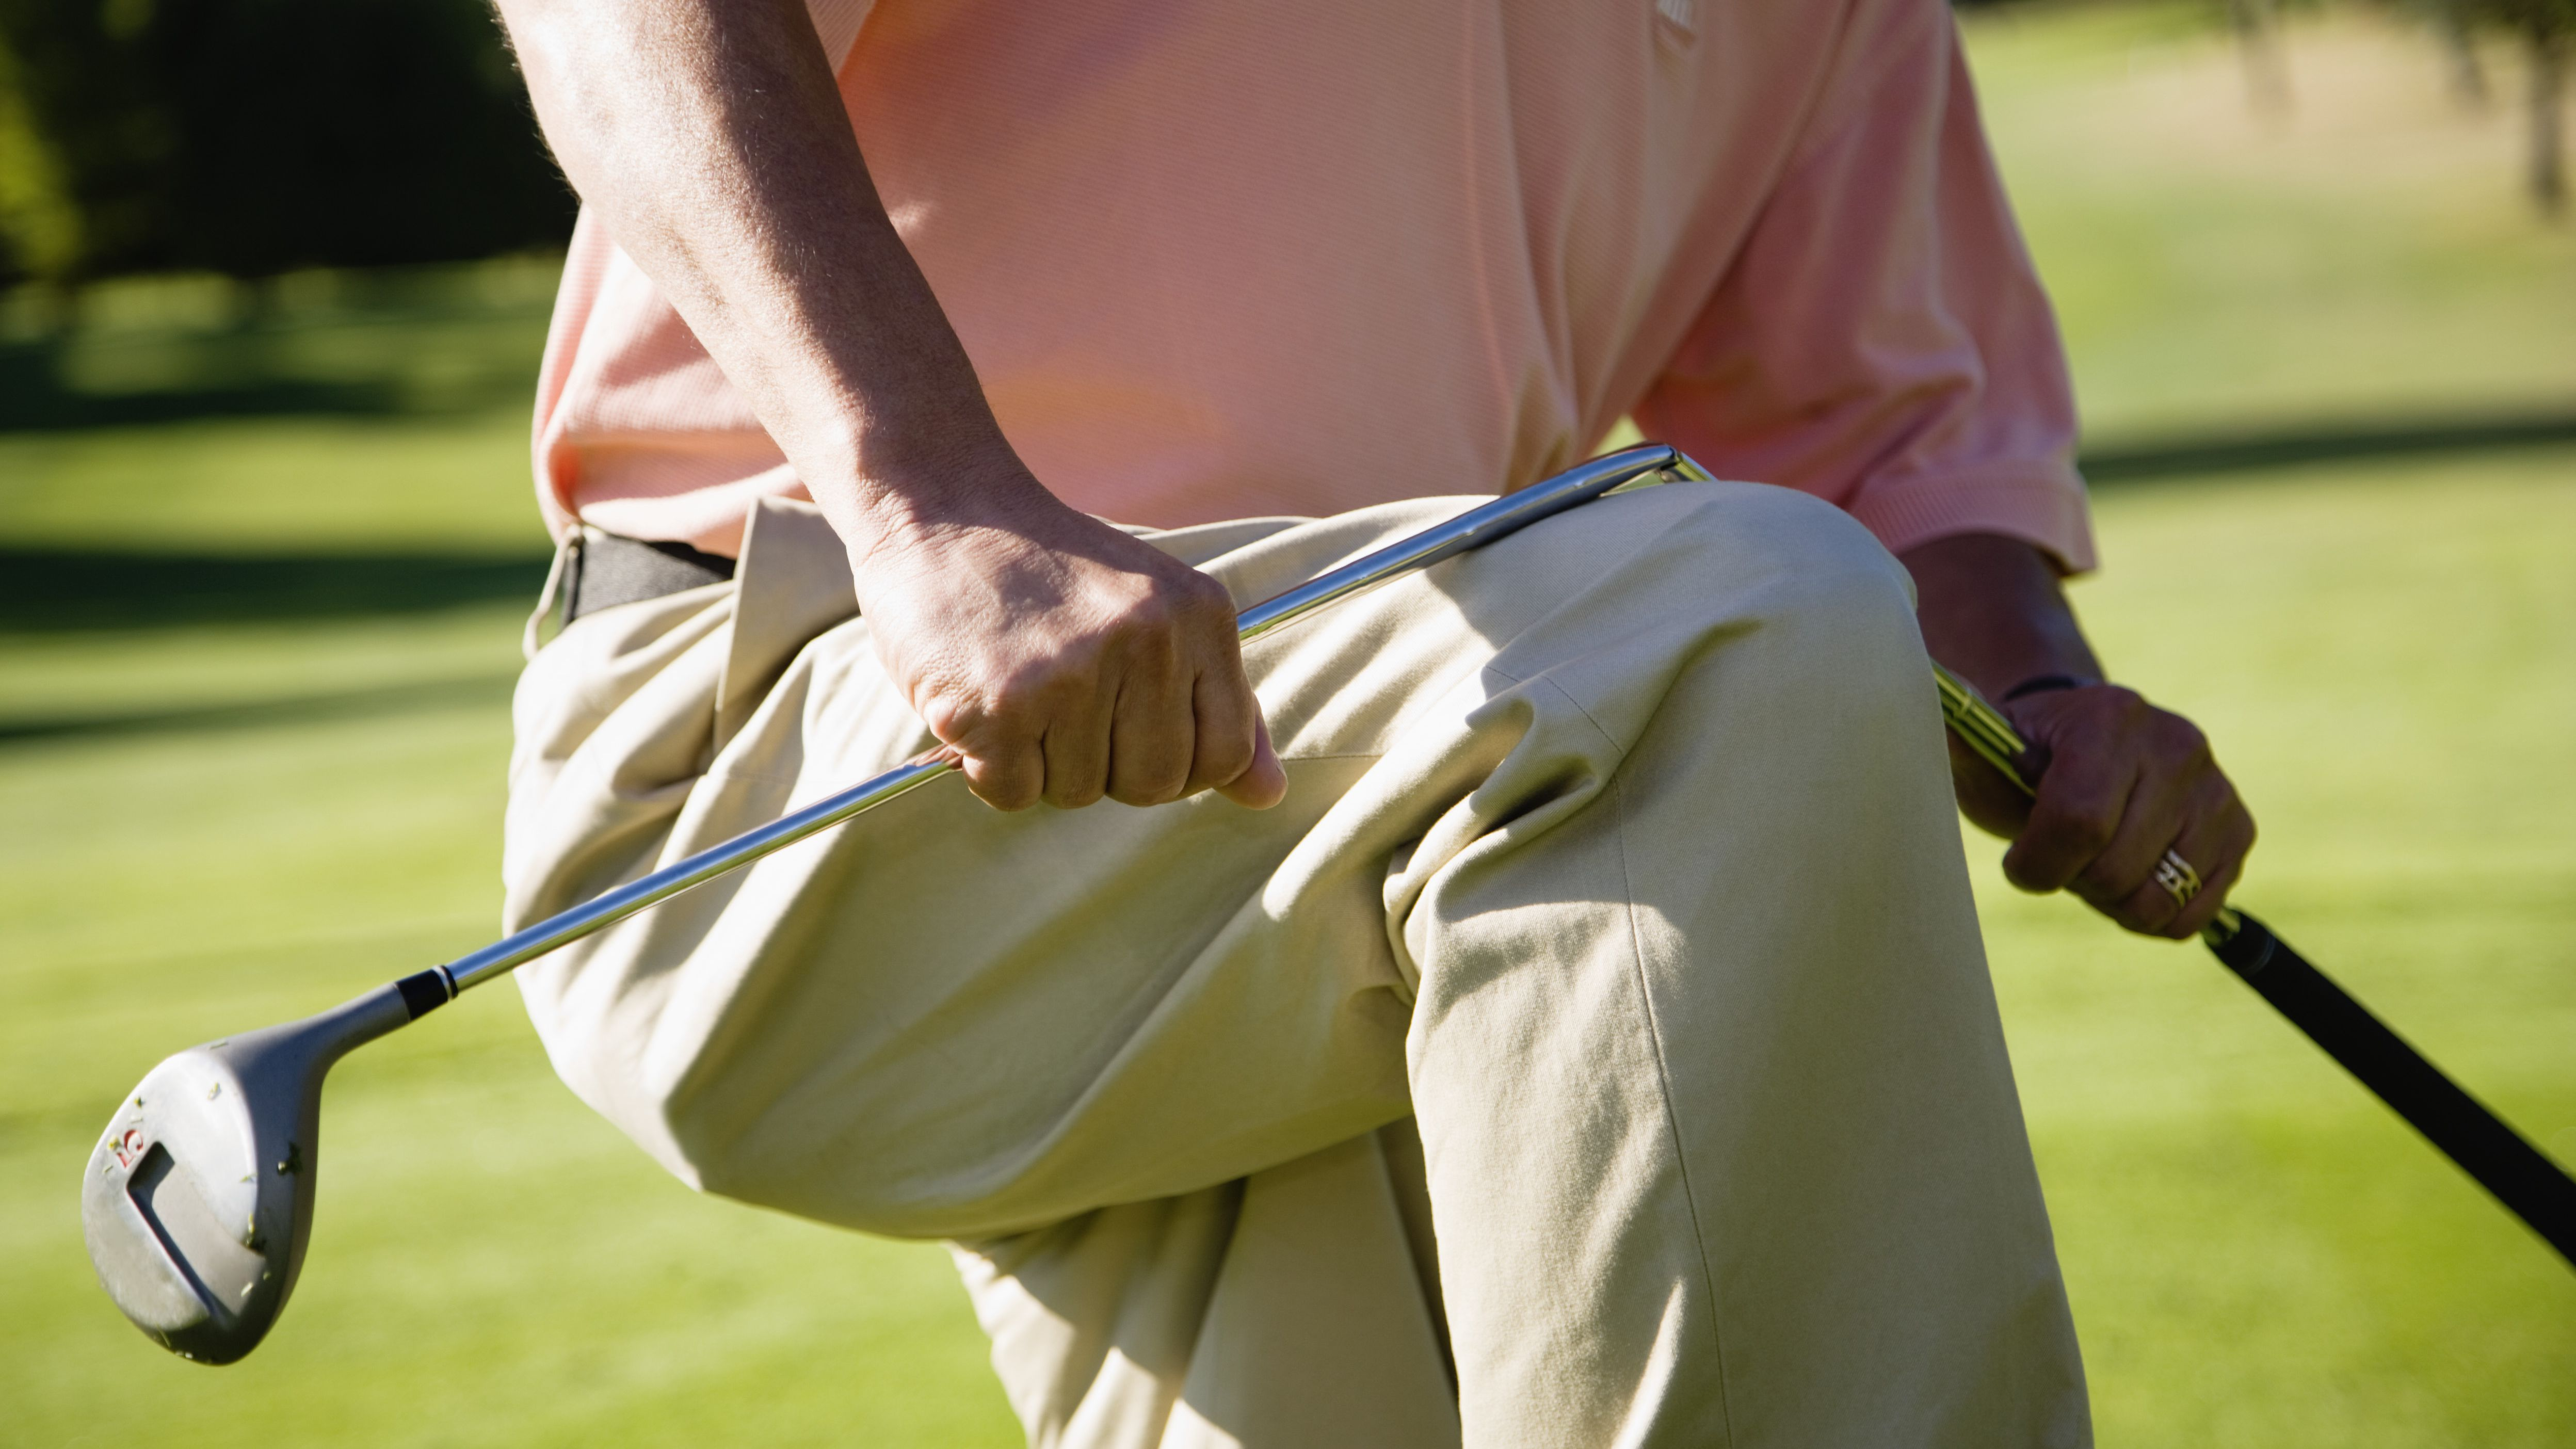 Why No Golfer Wants to Be Called a Hacker